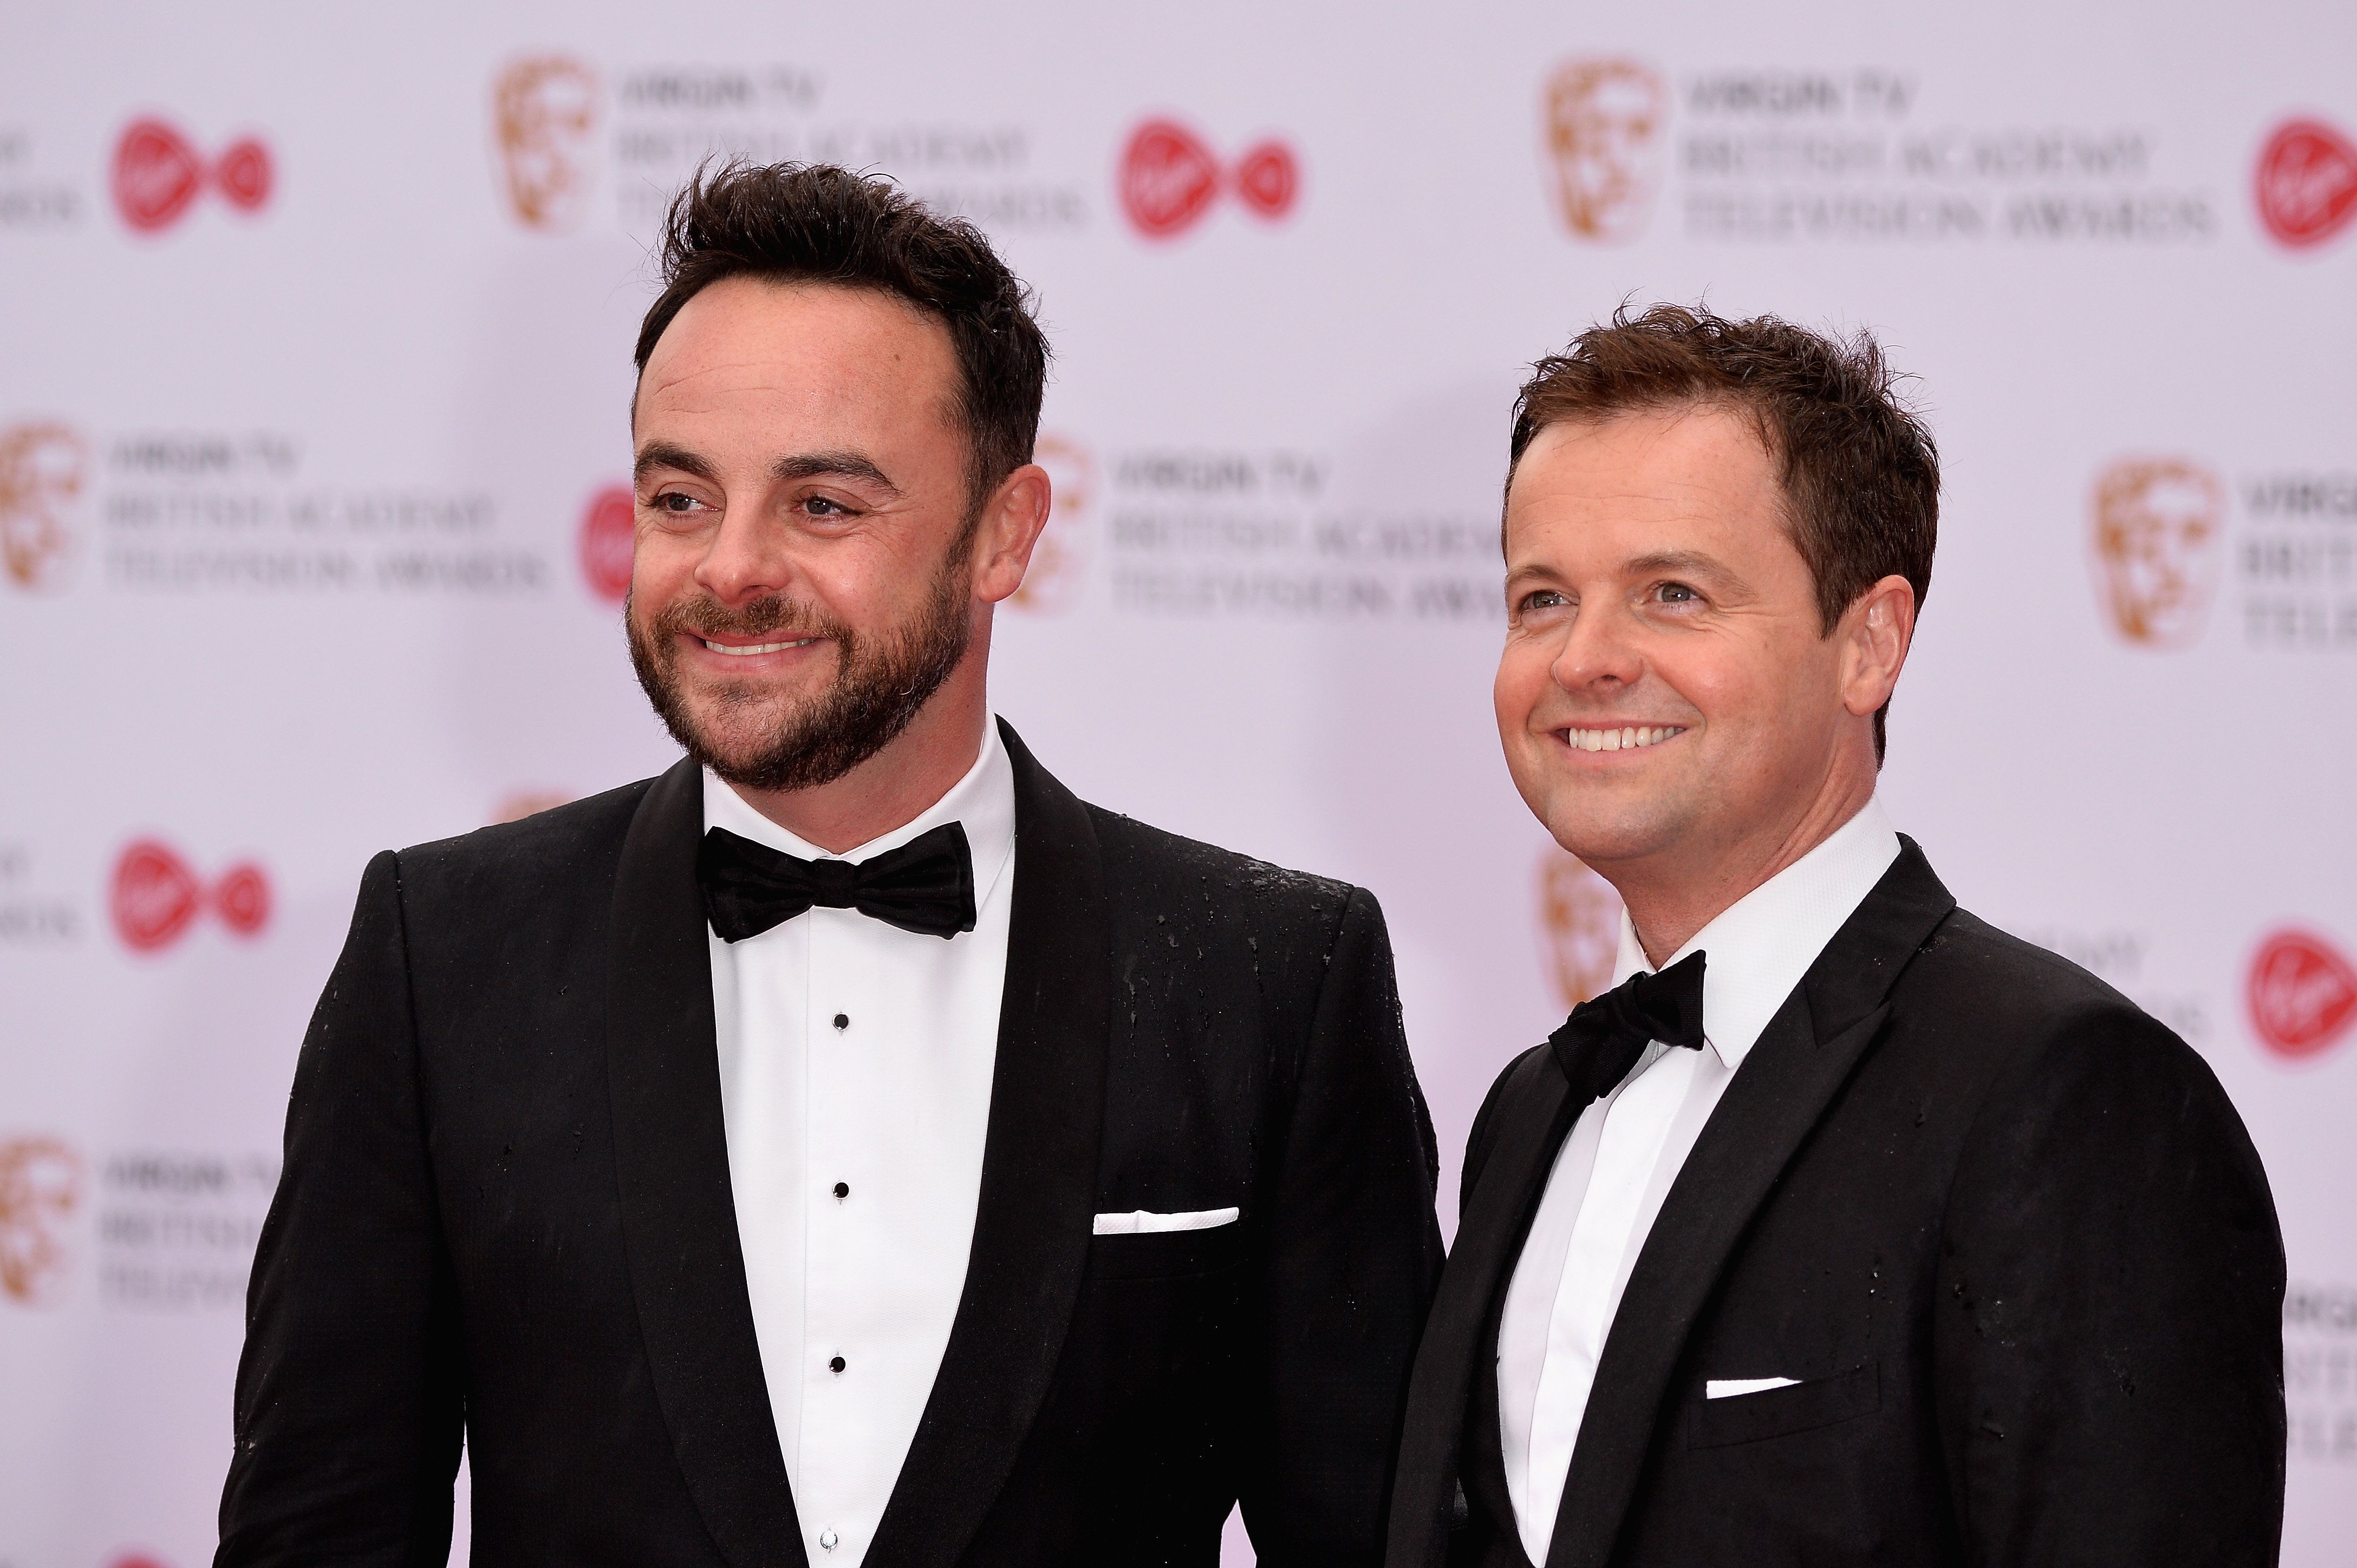 Ant and Dec at last year's TV